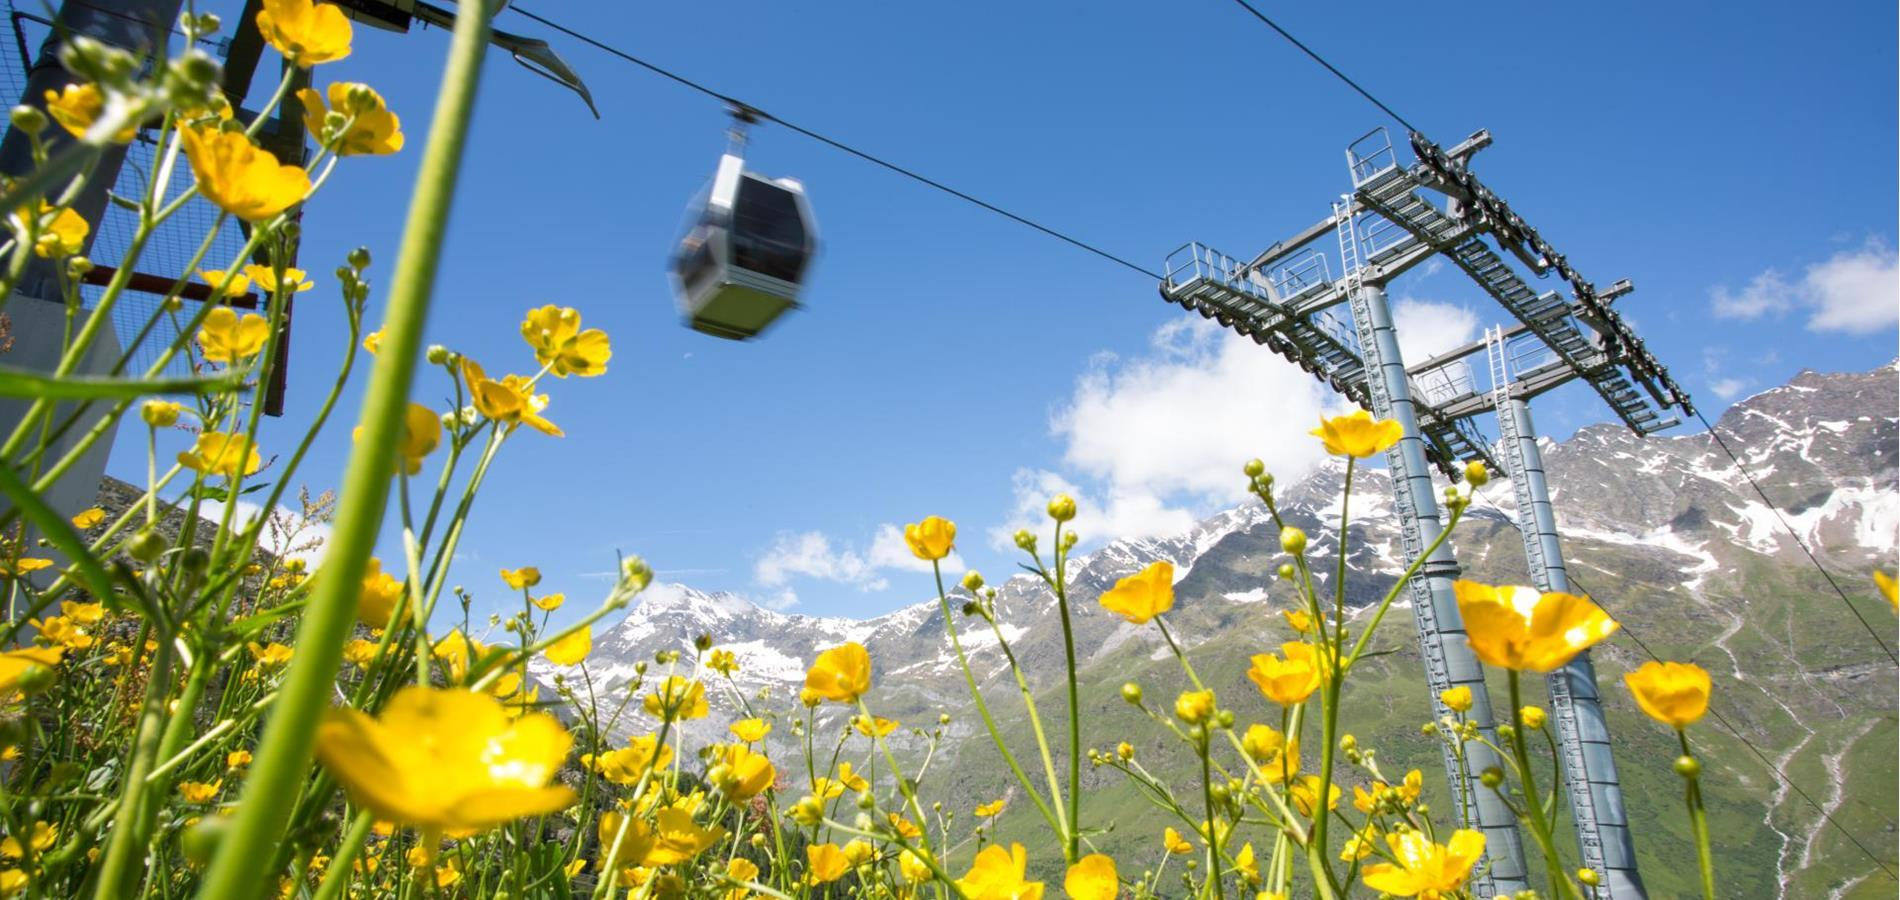 Cable Cars in the Passeiertal Valley